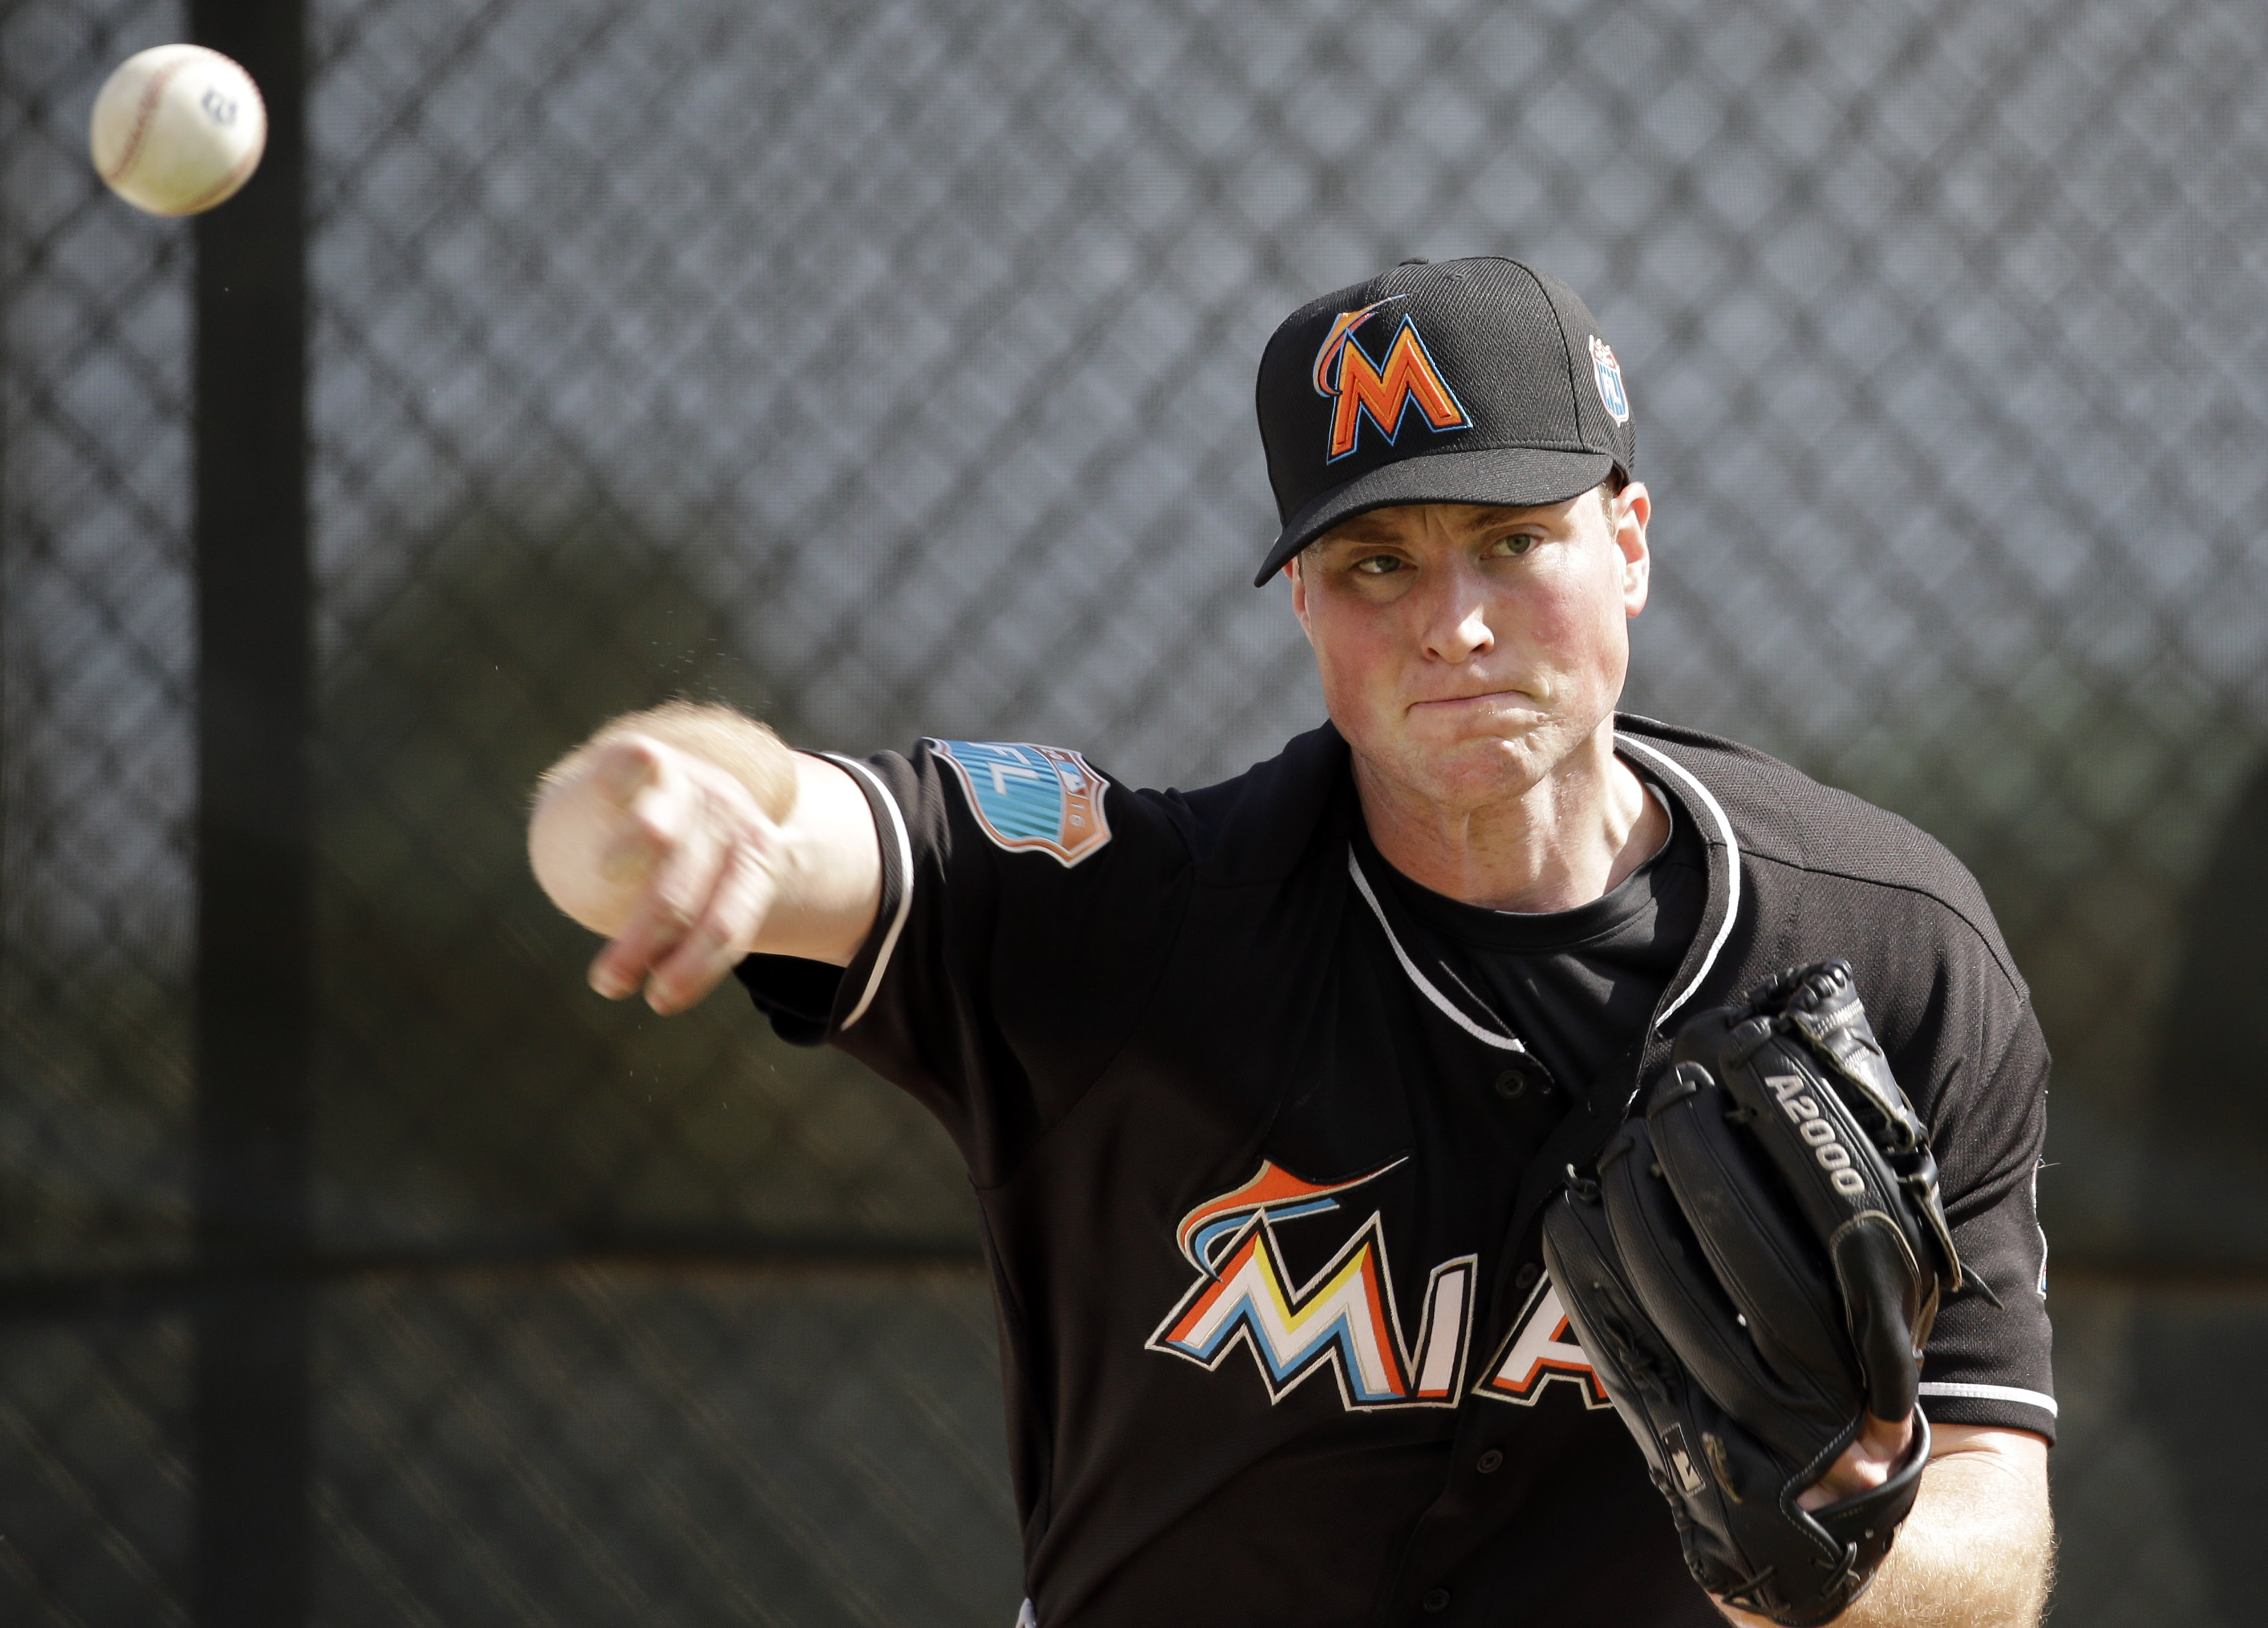 FILE - In this Feb. 22, 2016, file photo, Miami Marlins pitcher Carter Capps throws a bullpen session during spring training baseball practice in Jupiter, Fla. Capps is expected to be sidelined for an extended period because of discomfort in his right elb